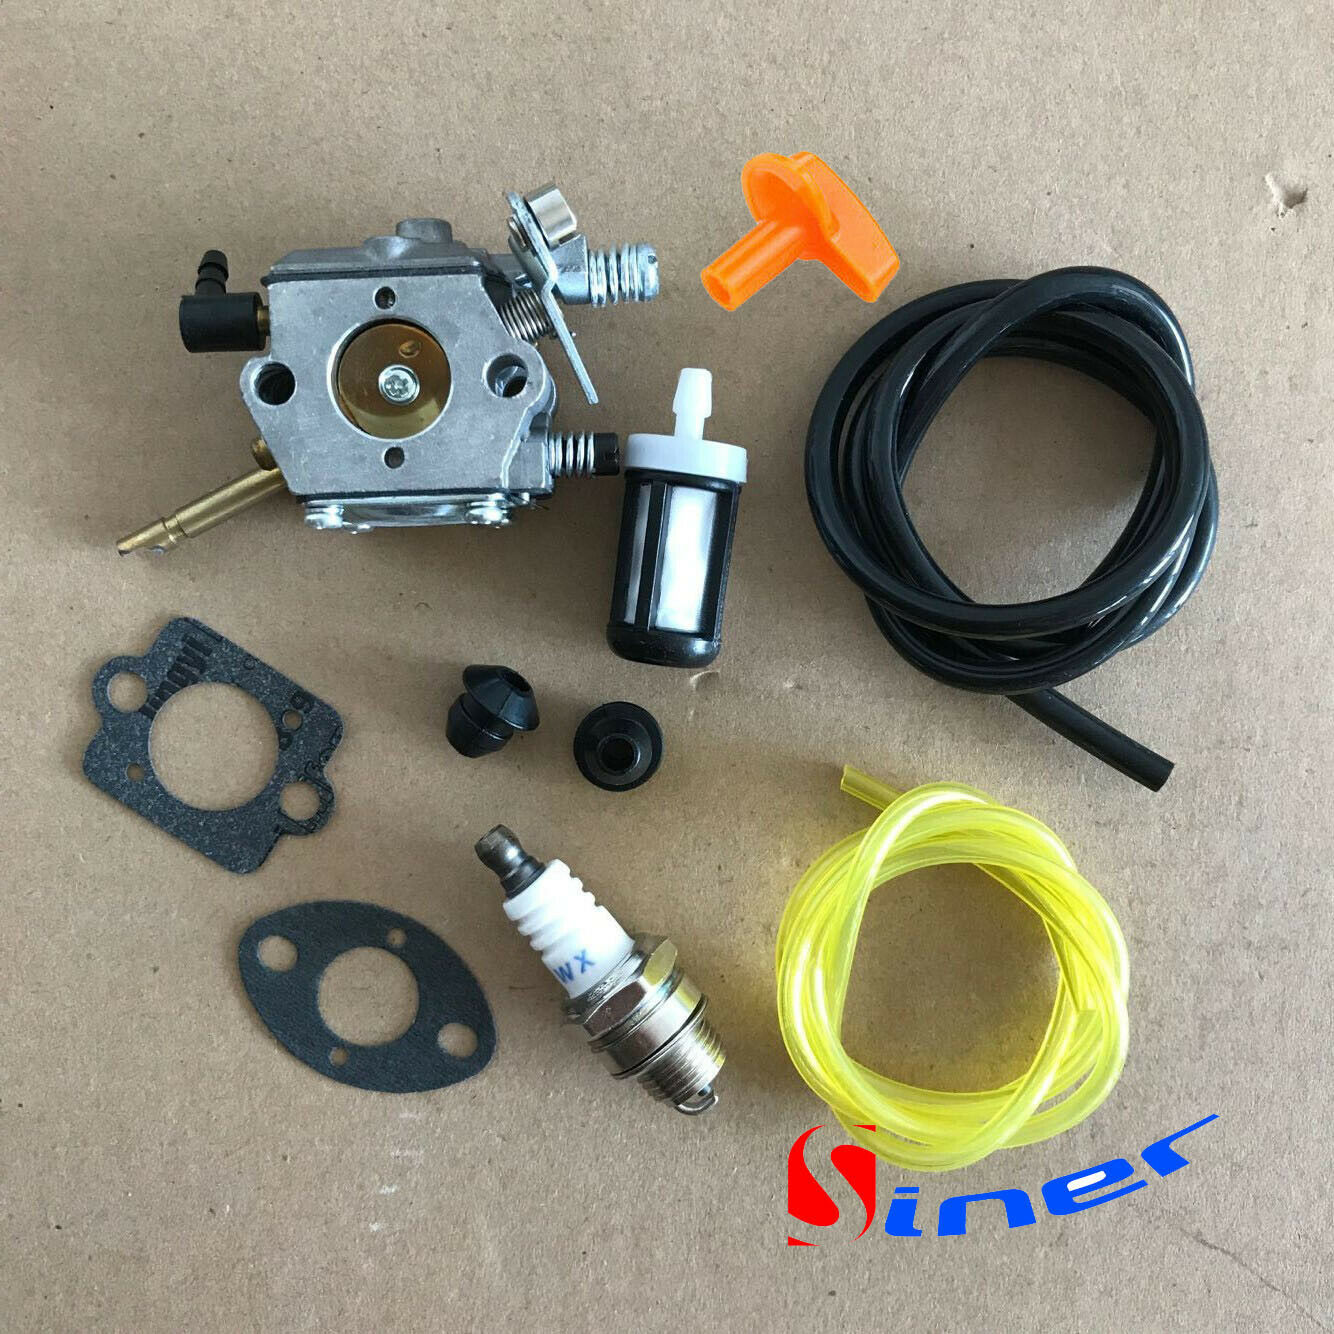 Primary image for Carburetor For Walbro WT-45-1 WT-45 WT-45A Stihl H24D FS48 FS52 FS66 FS81 FS106